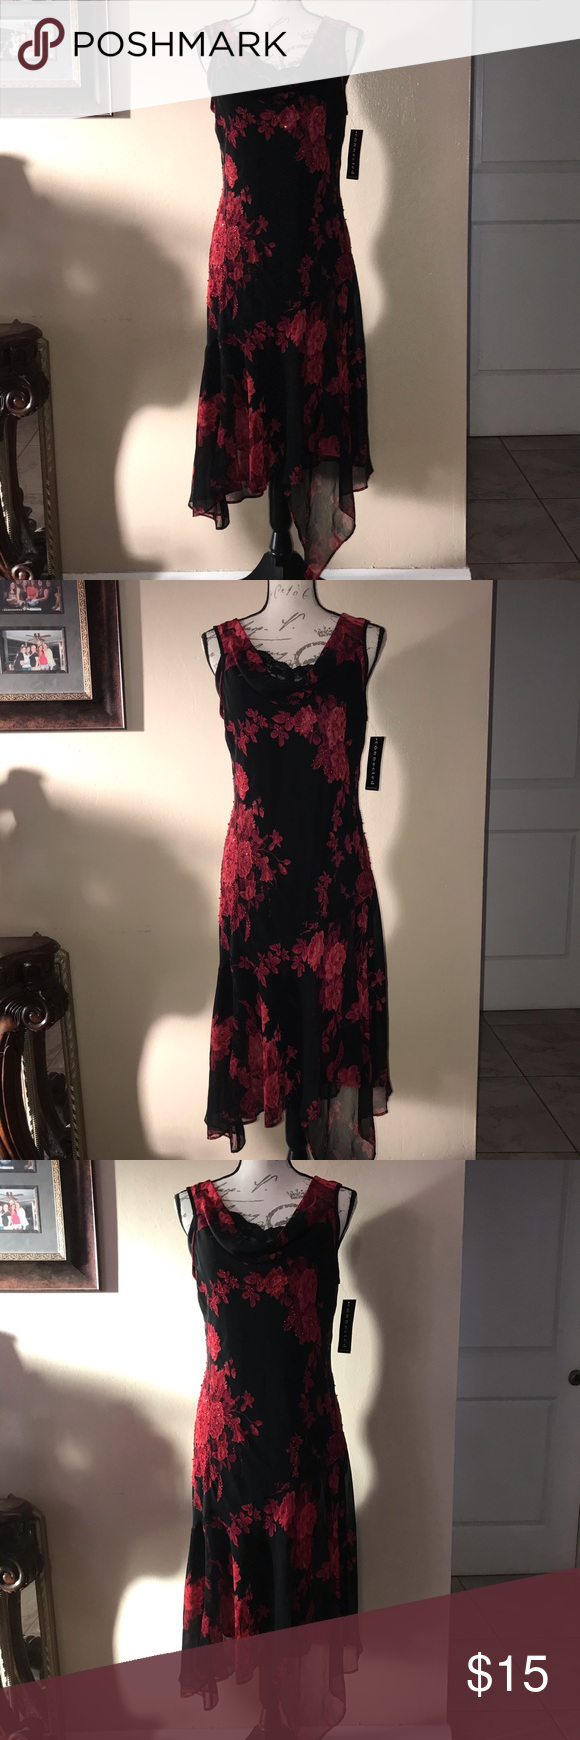 Shear Black Dress With Rose Roses And Black Beads Dresses Connected Apparel Dress Black Dress [ 1740 x 580 Pixel ]